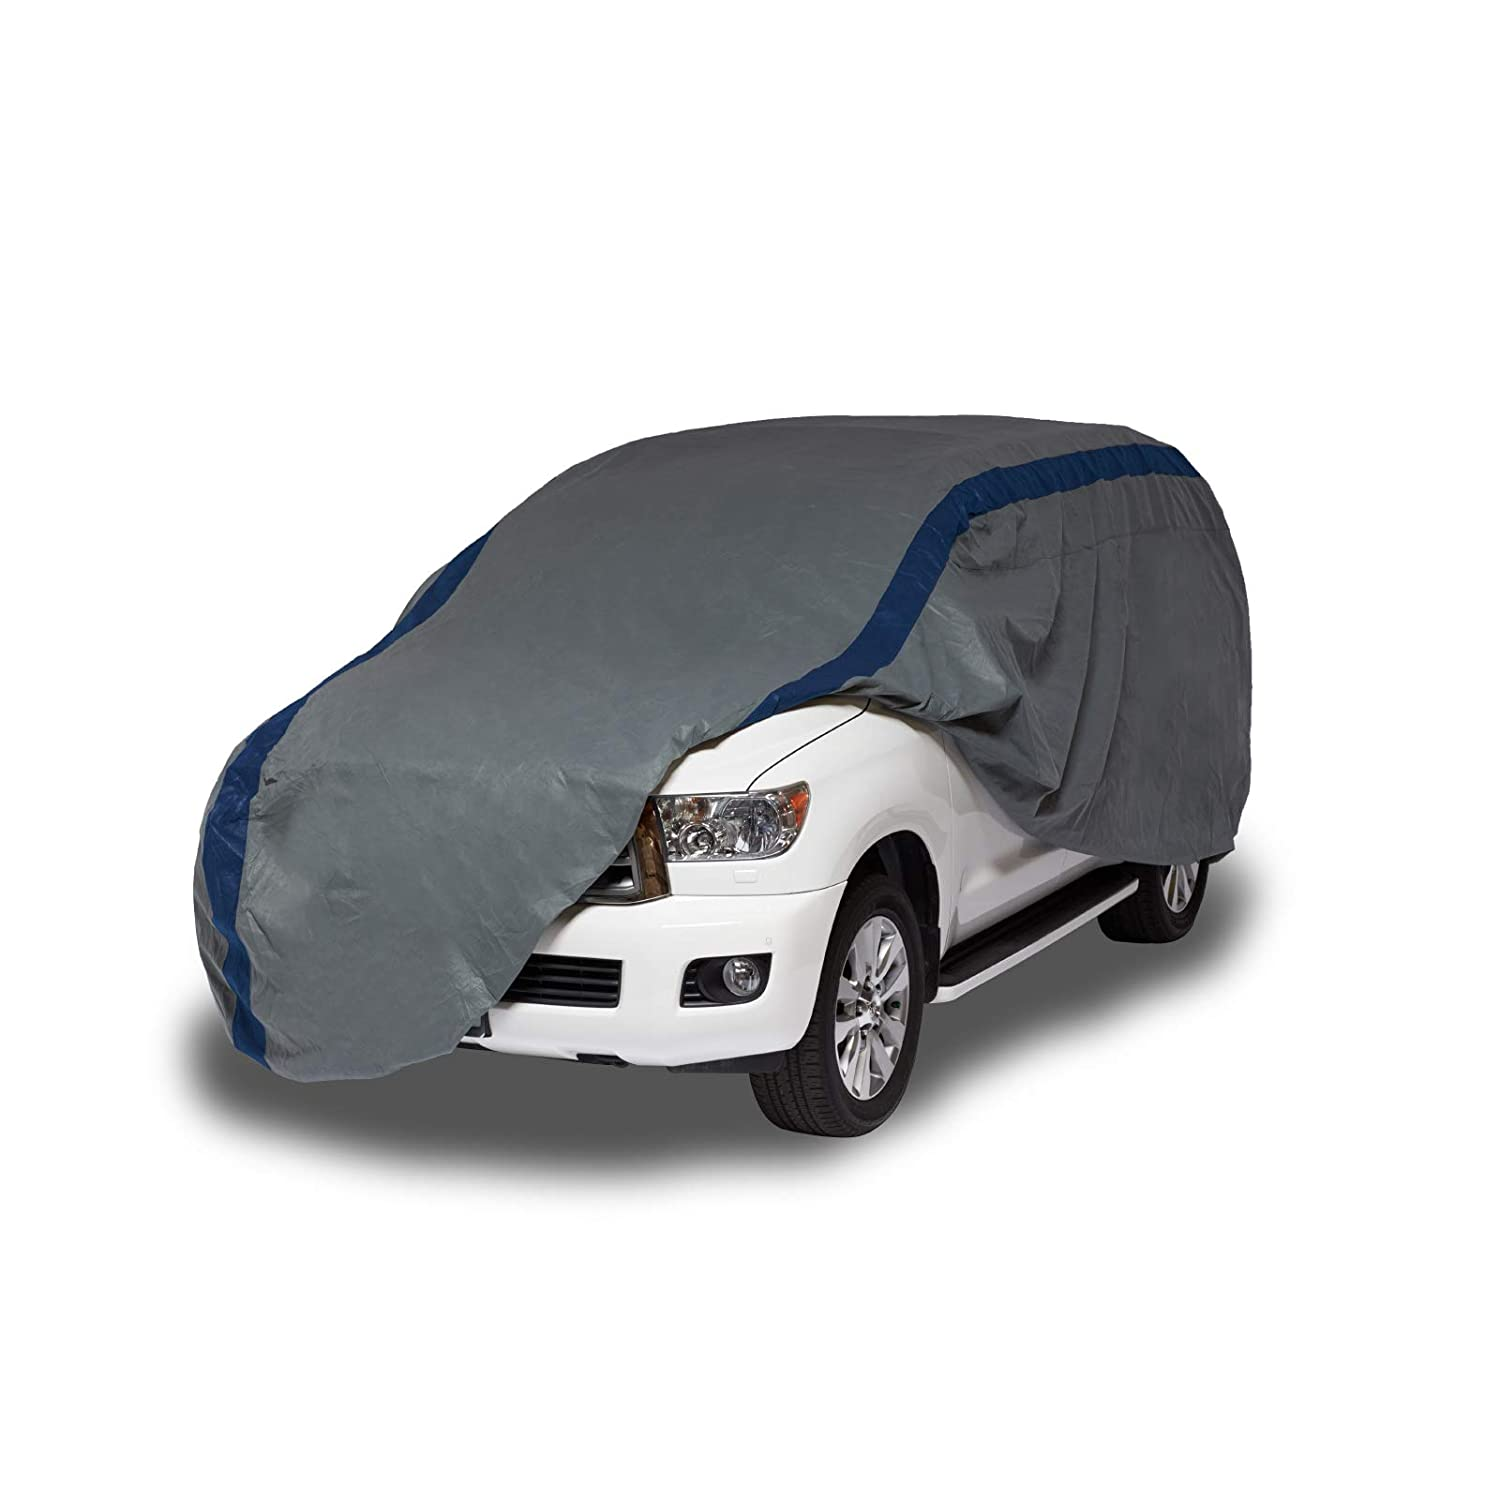 Duck Covers Weather Defender SUV Cover for SUVs/Pickup Trucks with Shell or Bed Cap up to 17' 5""